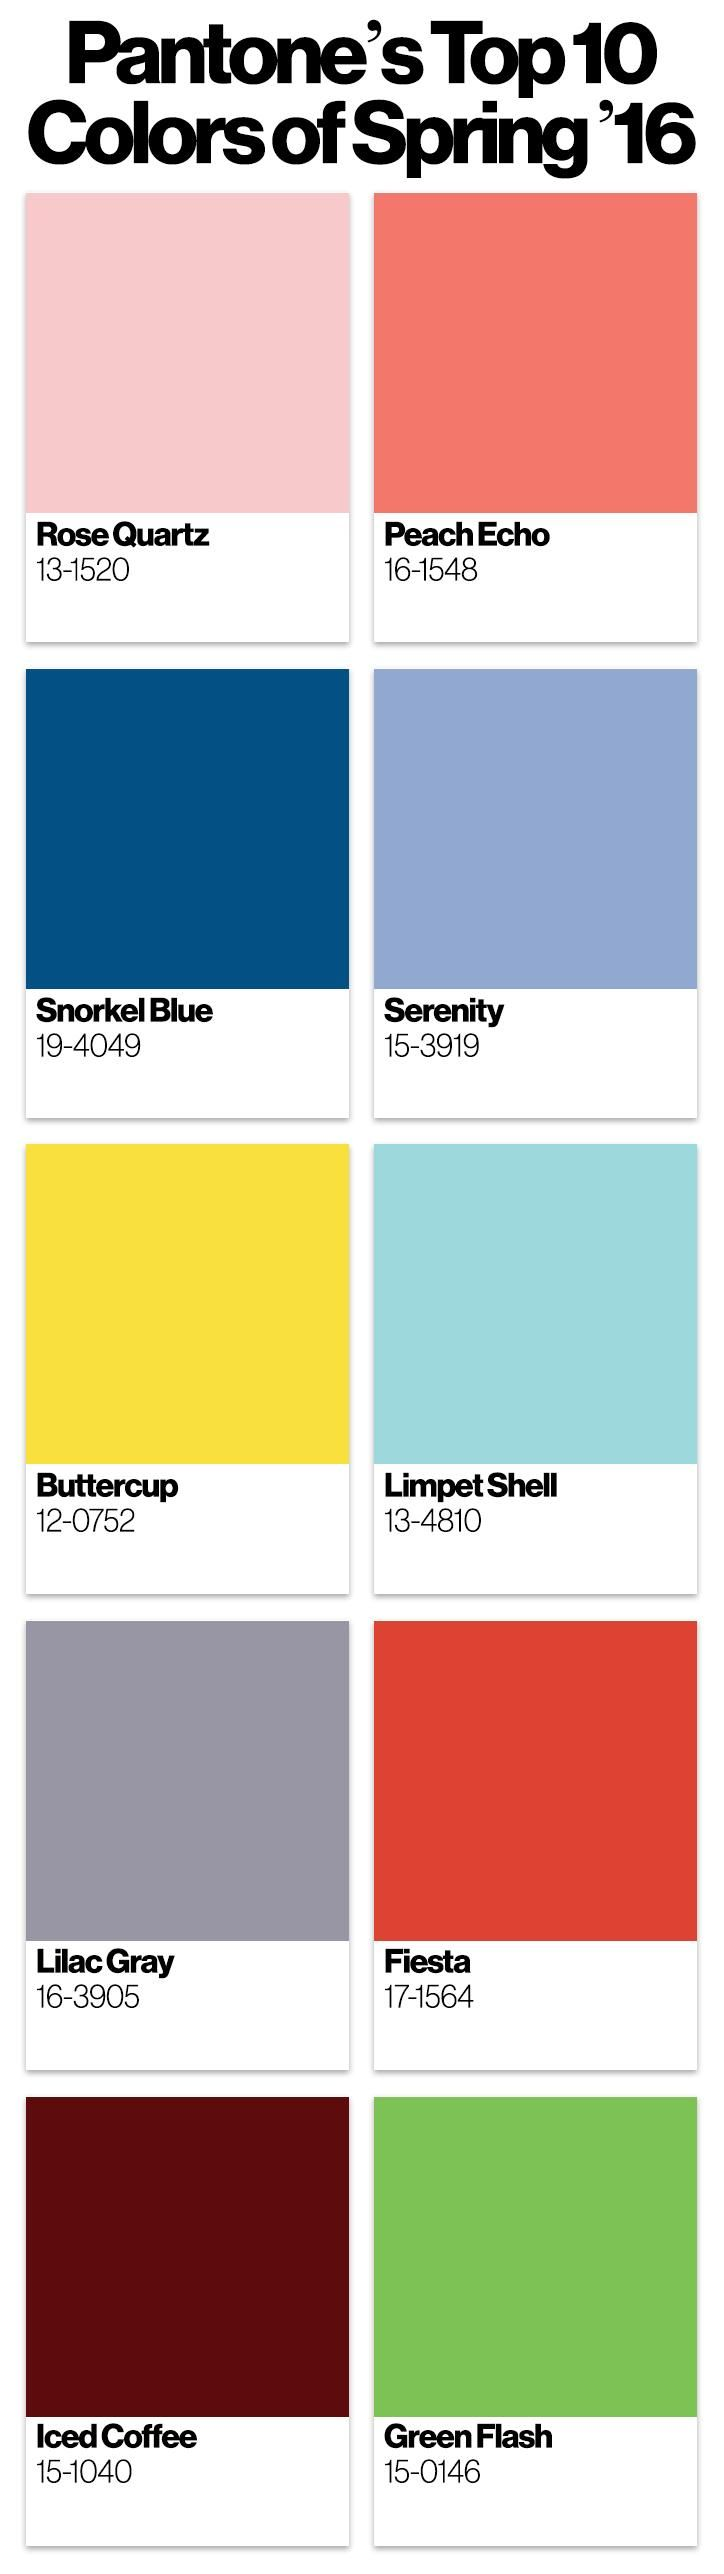 the top 10 colors for spring 2016 according to pantone get info on them here fashion and. Black Bedroom Furniture Sets. Home Design Ideas